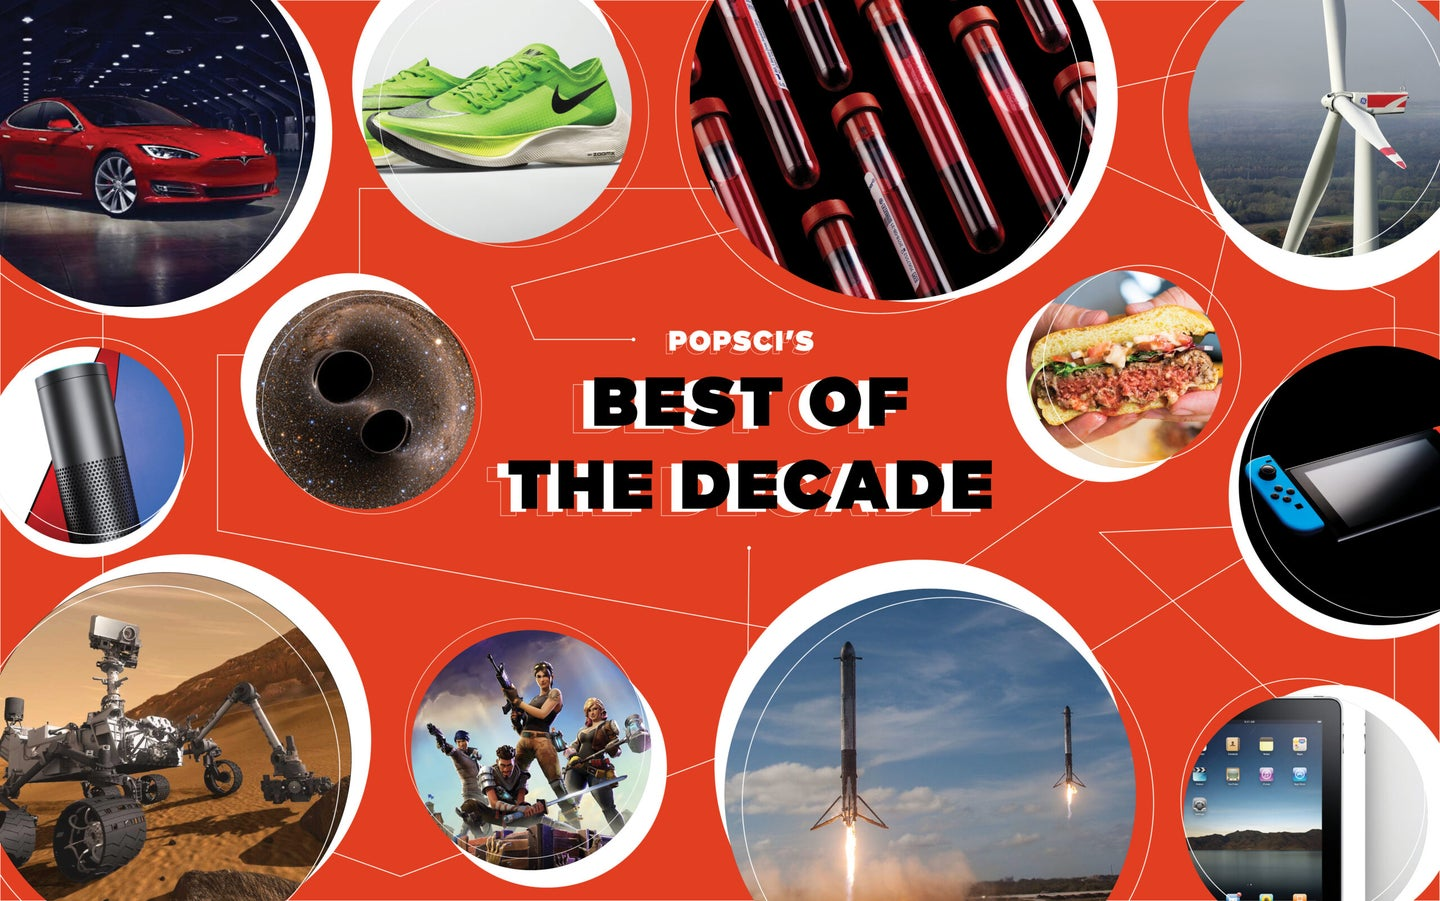 Snapshots of the best tech of the decade, including the Impossible 2.0 burger, Curiosity rover, and Fortnite video game